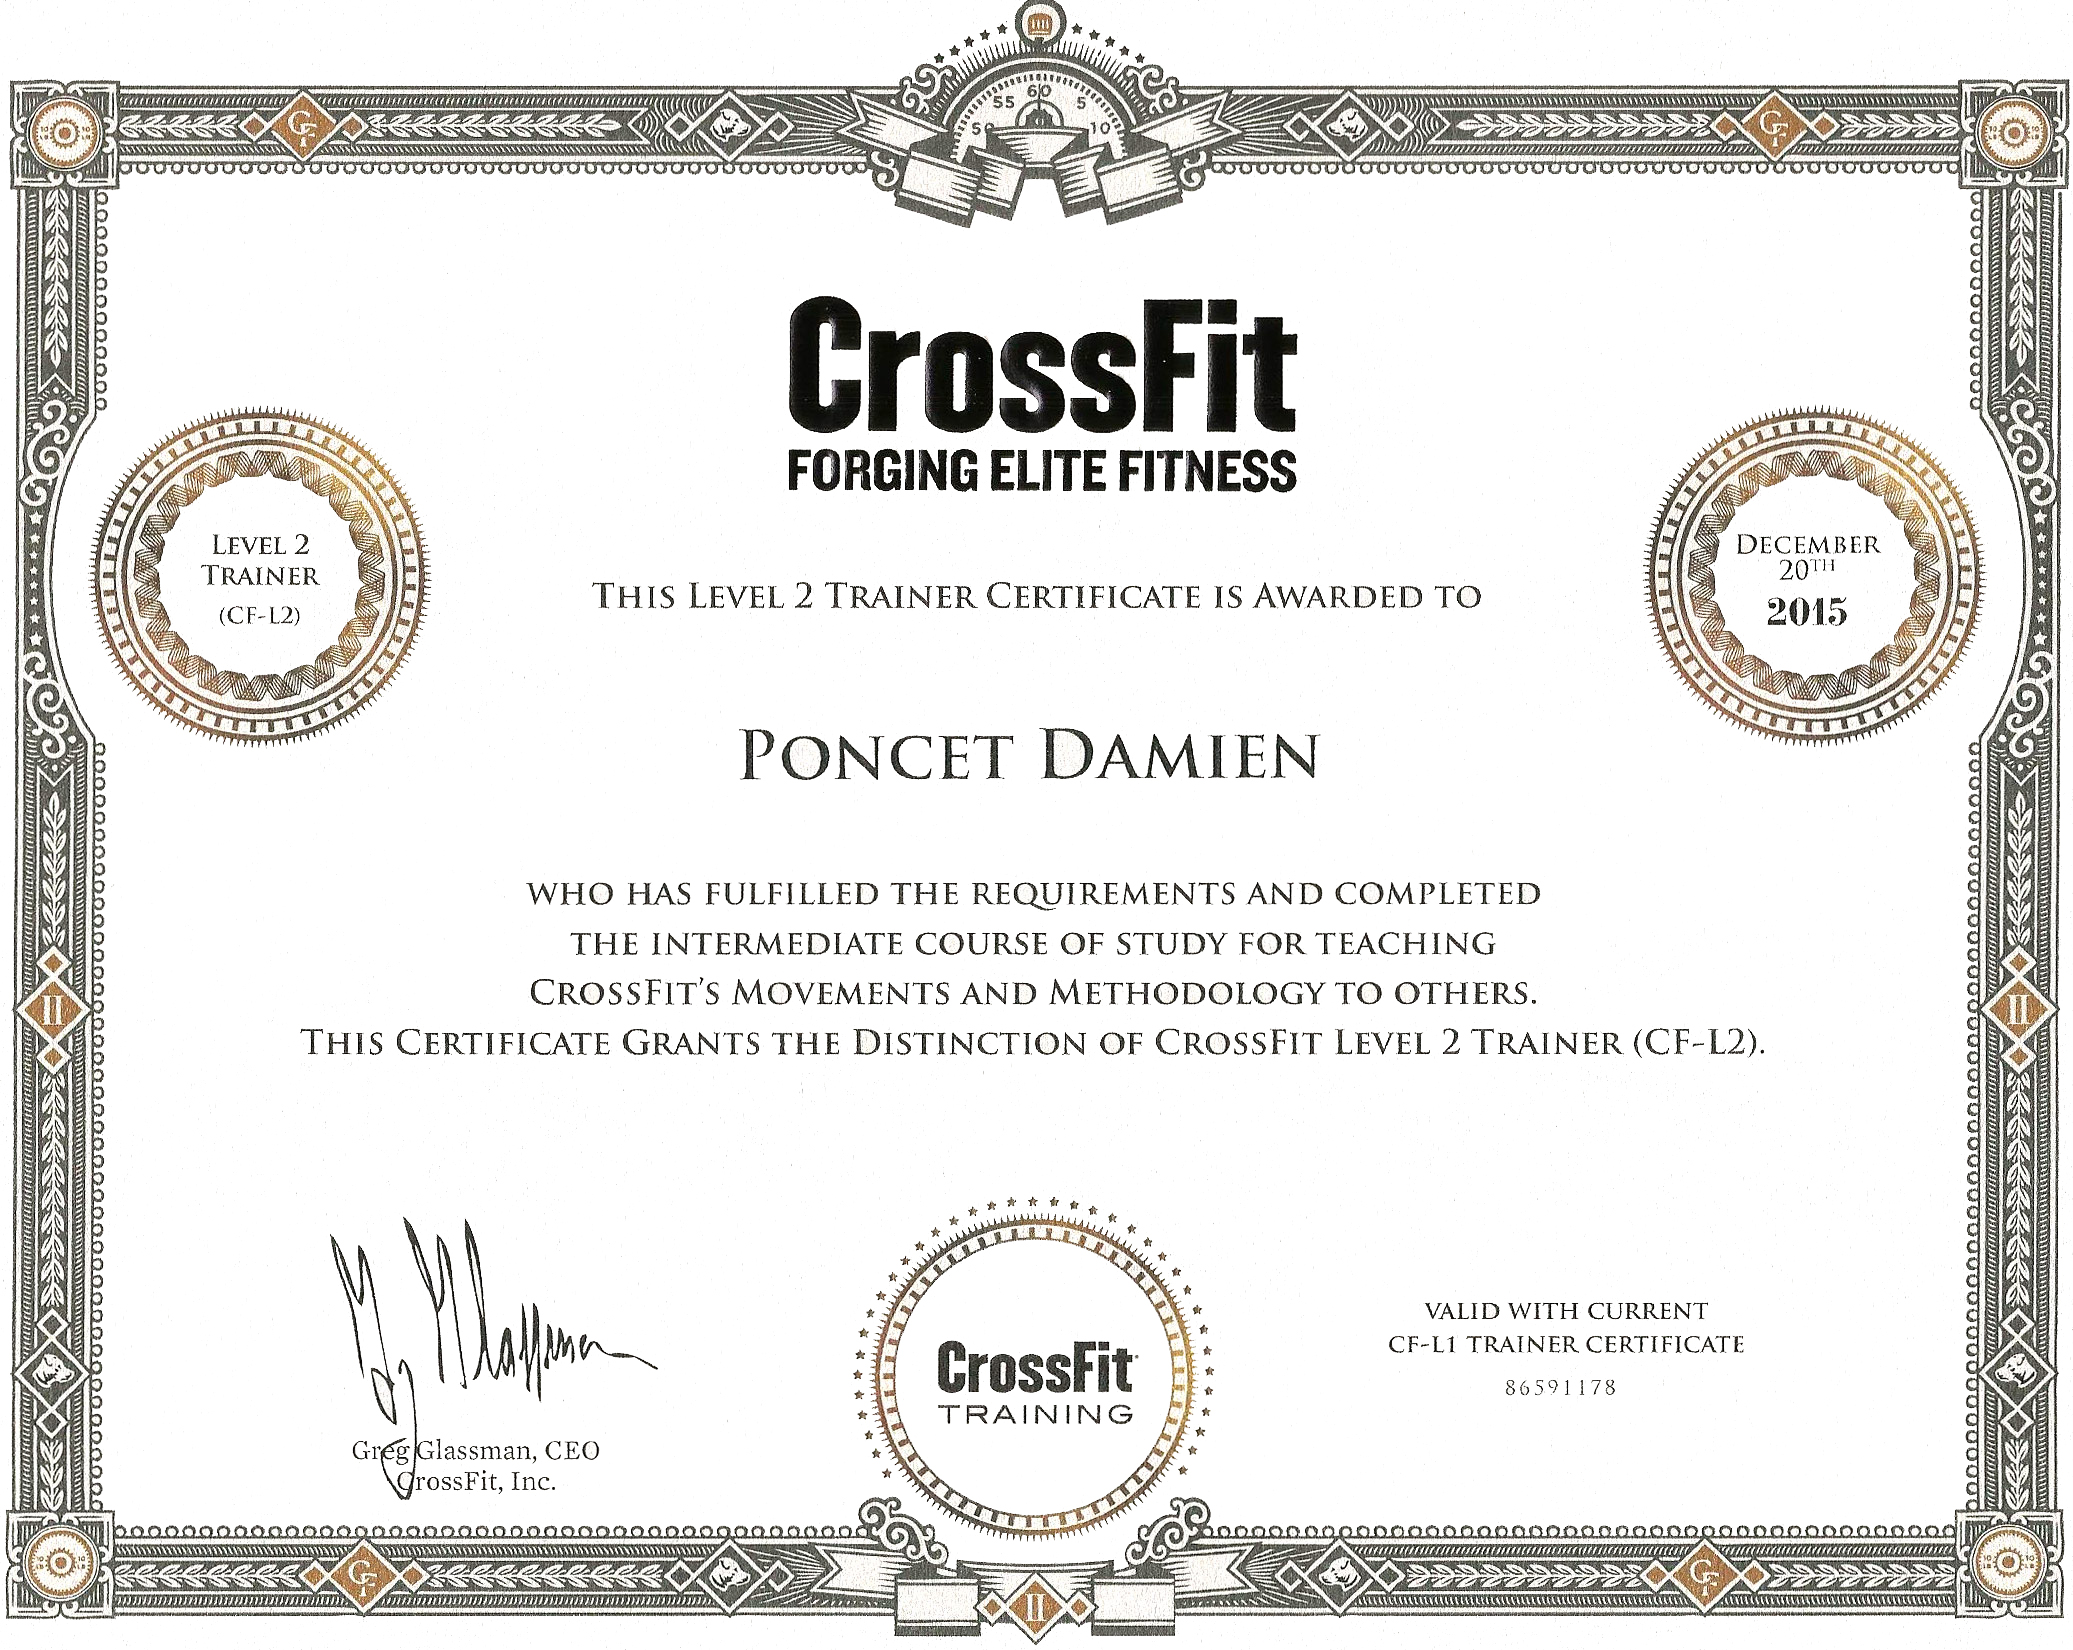 Damien Poncet CrossFit Trainer Level 2